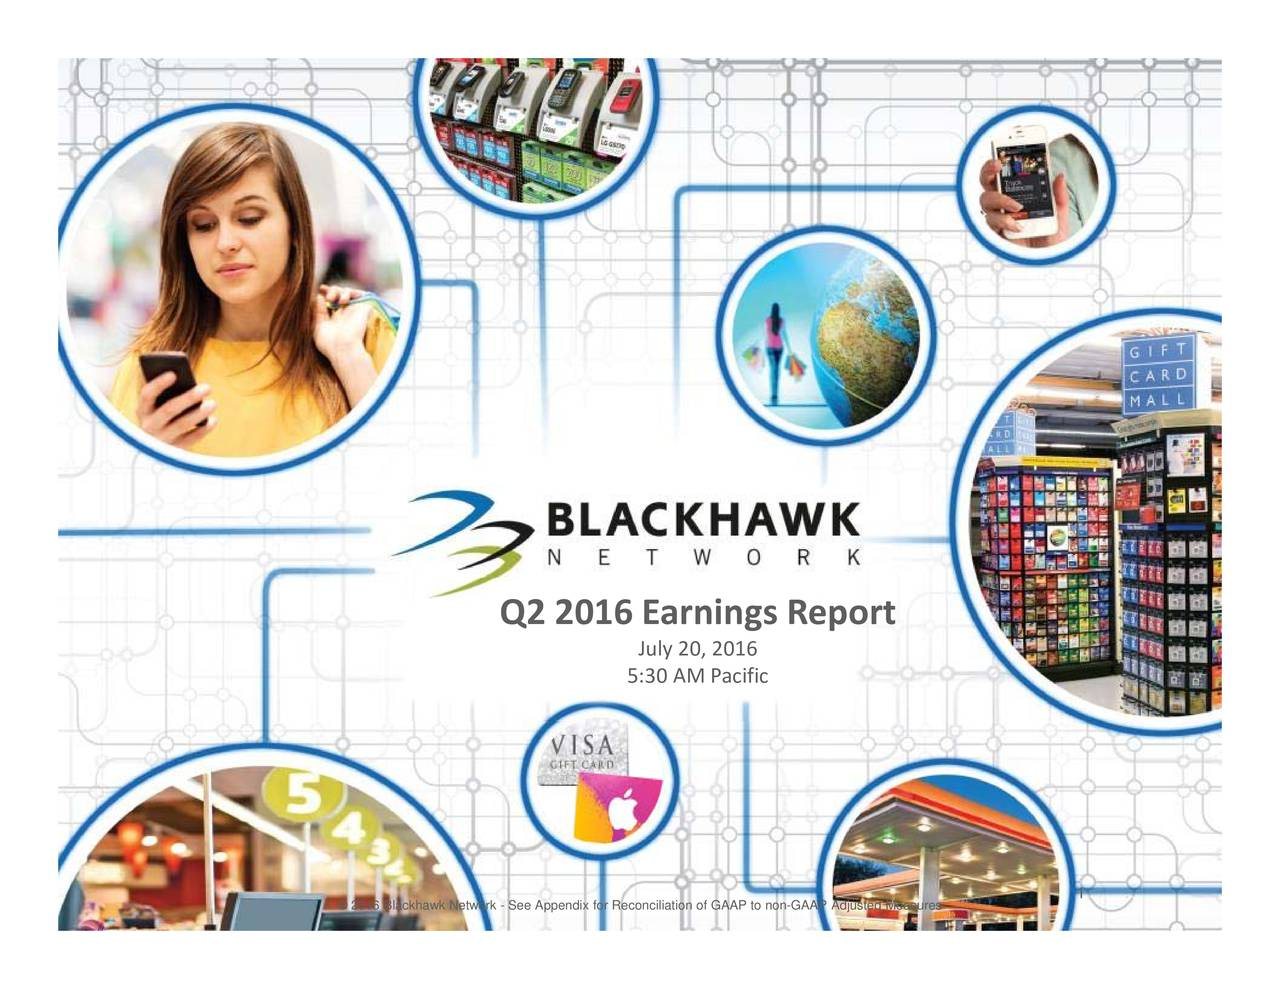 eport 01acific 0,M Earnings iliation of GAAP to non-GAAP Adjusted Measures Jul5:30 016 Q2 2016 Blackhawk Network - See Appendix for Reconc